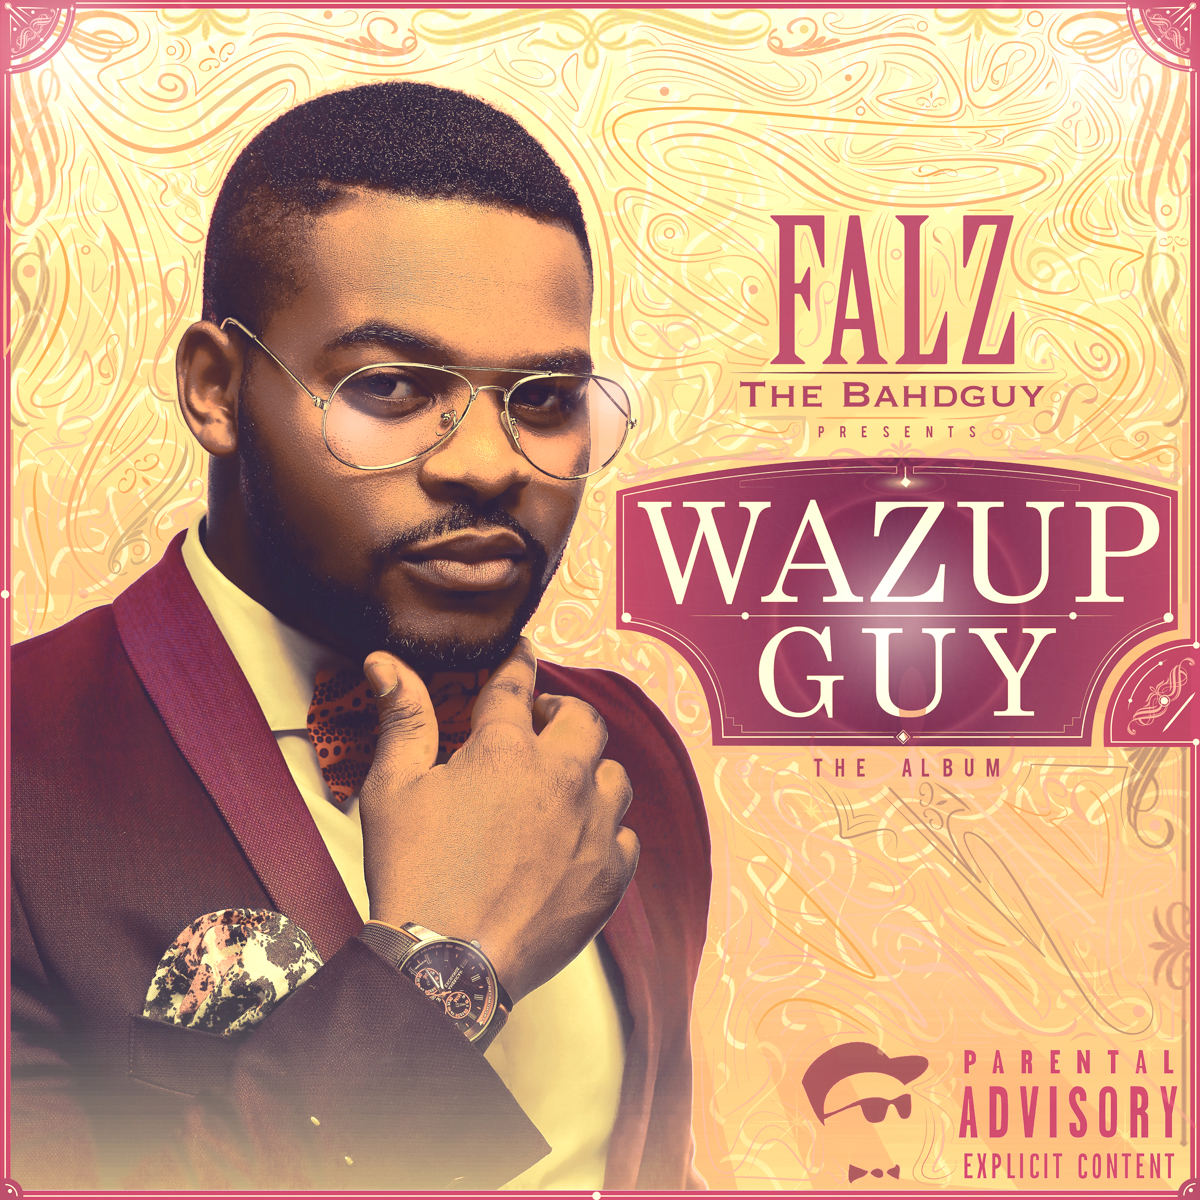 Falz-Wazup-Guy-Cover-ART